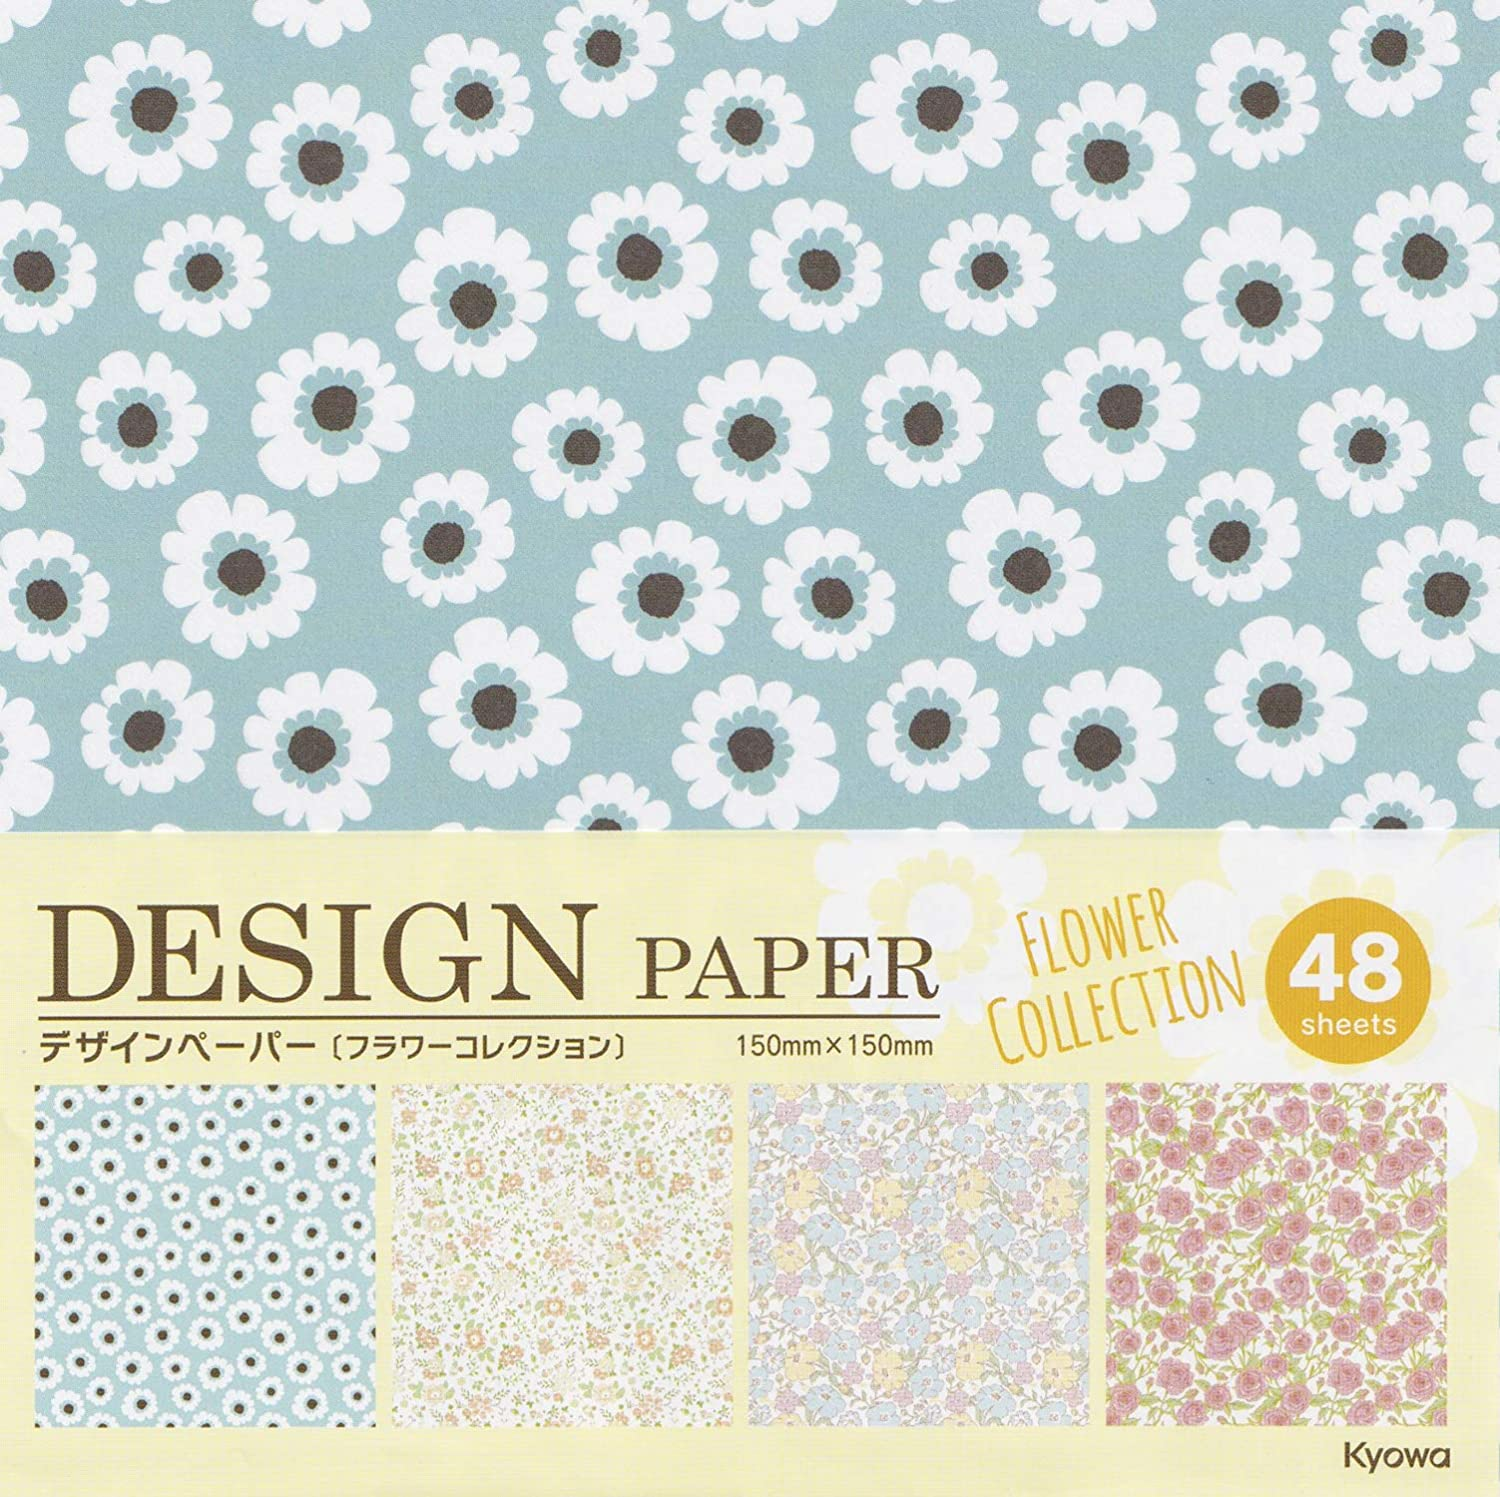 Arts and Crafts Projects Sparkling and Shining Origami Paper 6 inches Square Made in Japan Premium Quality for Kids /& Adults